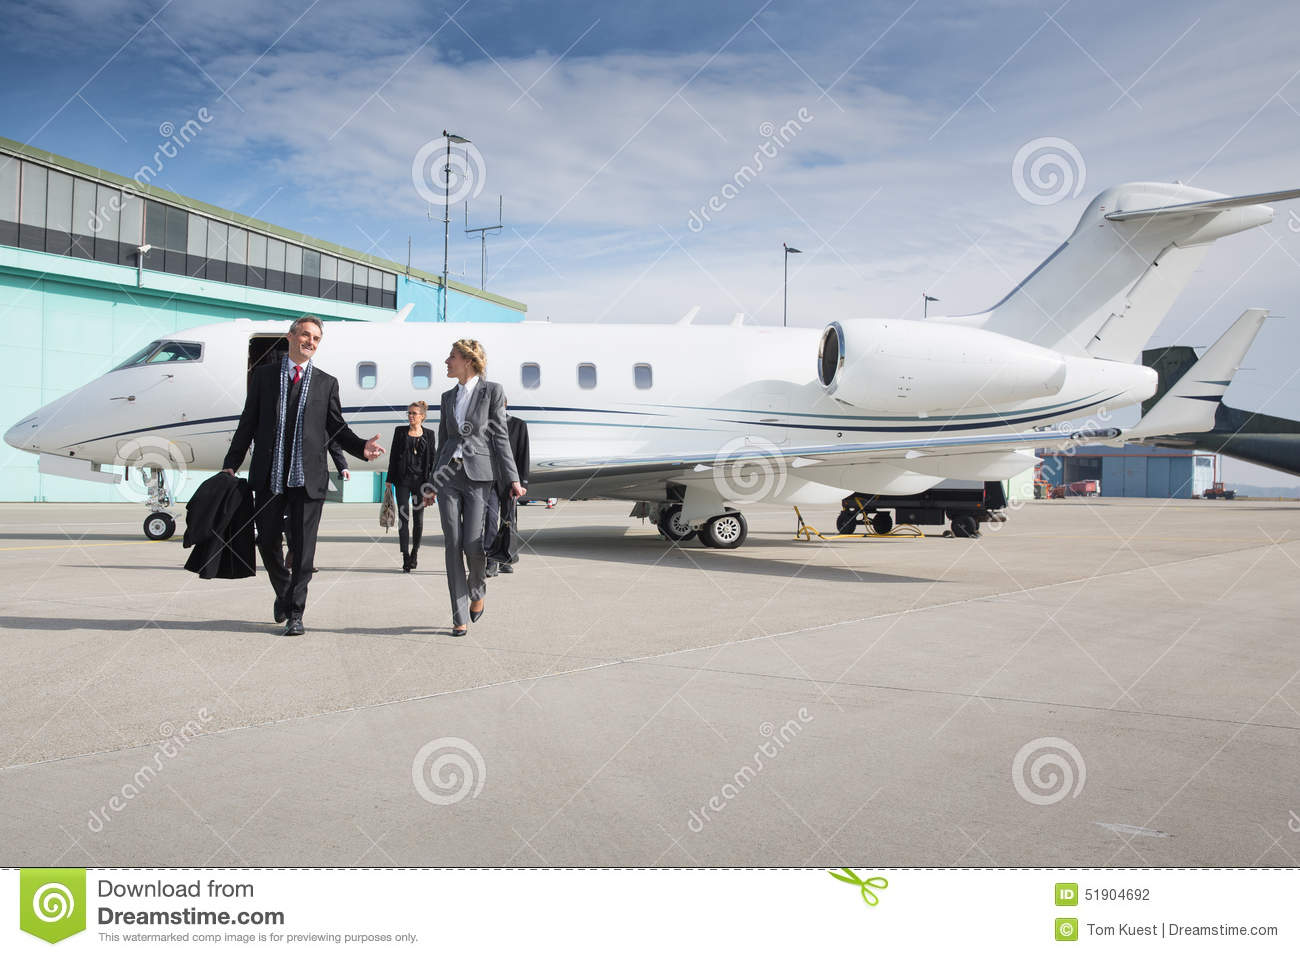 Executive Business Team Leaving Corporate Jet Stock Photo  Image 51904692